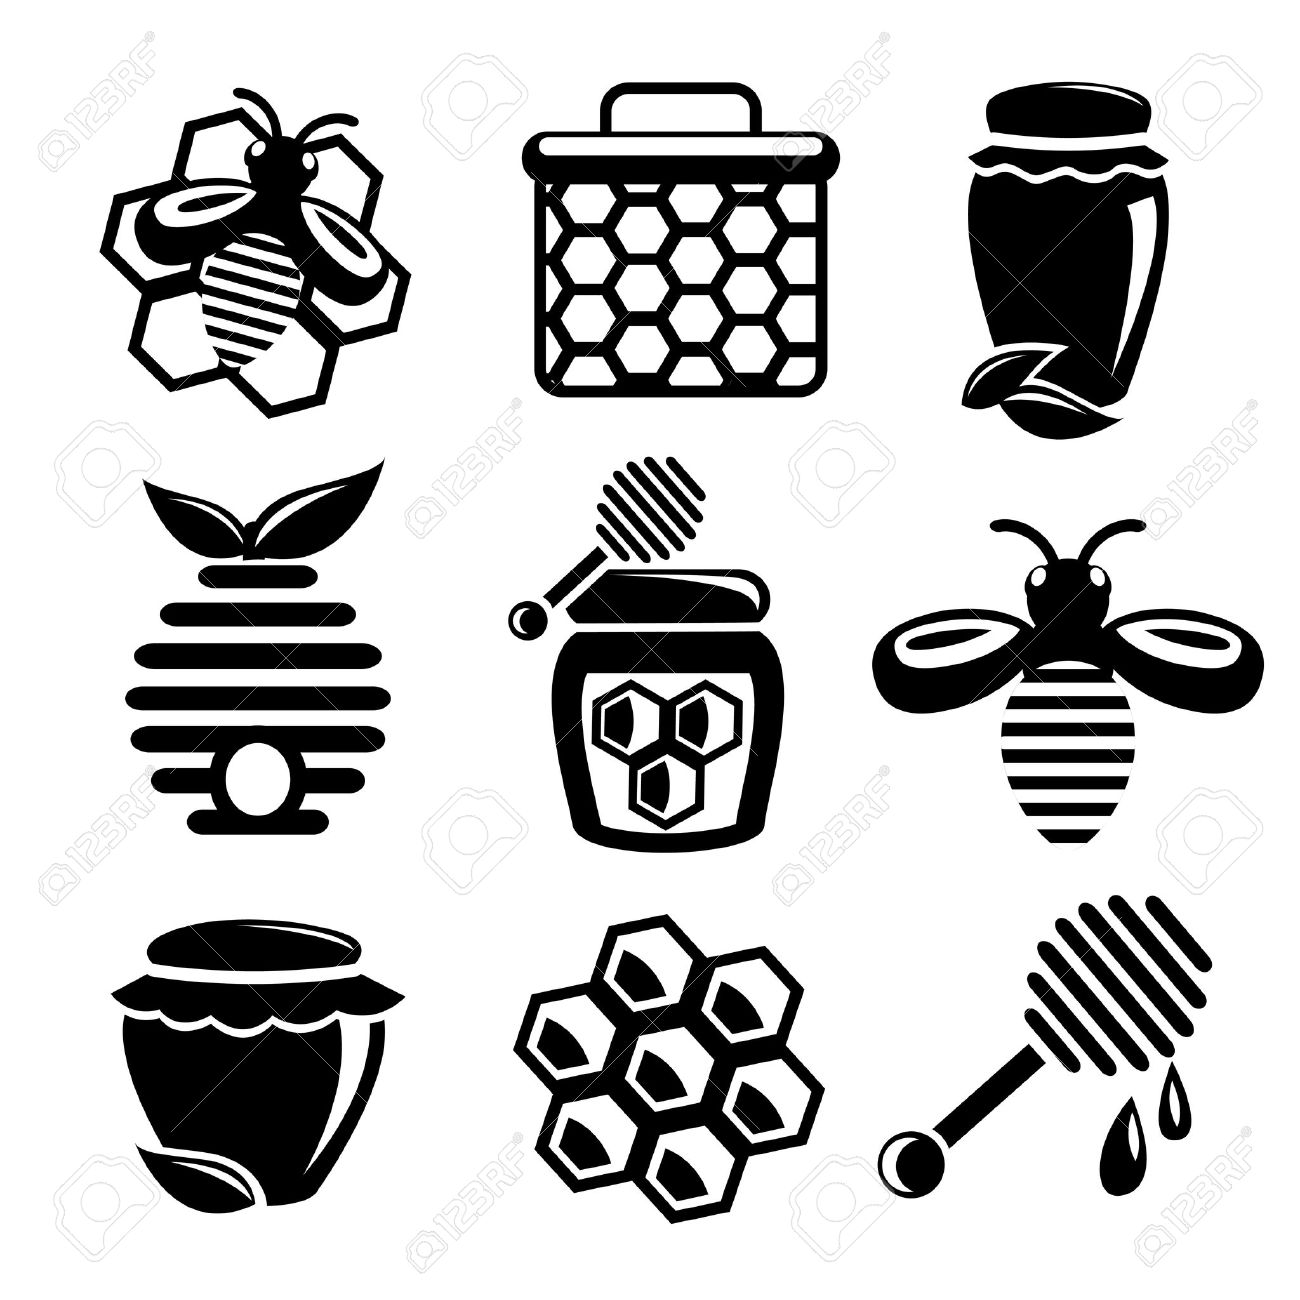 1300x1300 Honey Bee Hive And Cell Food Agriculture Black Silhouette Icons